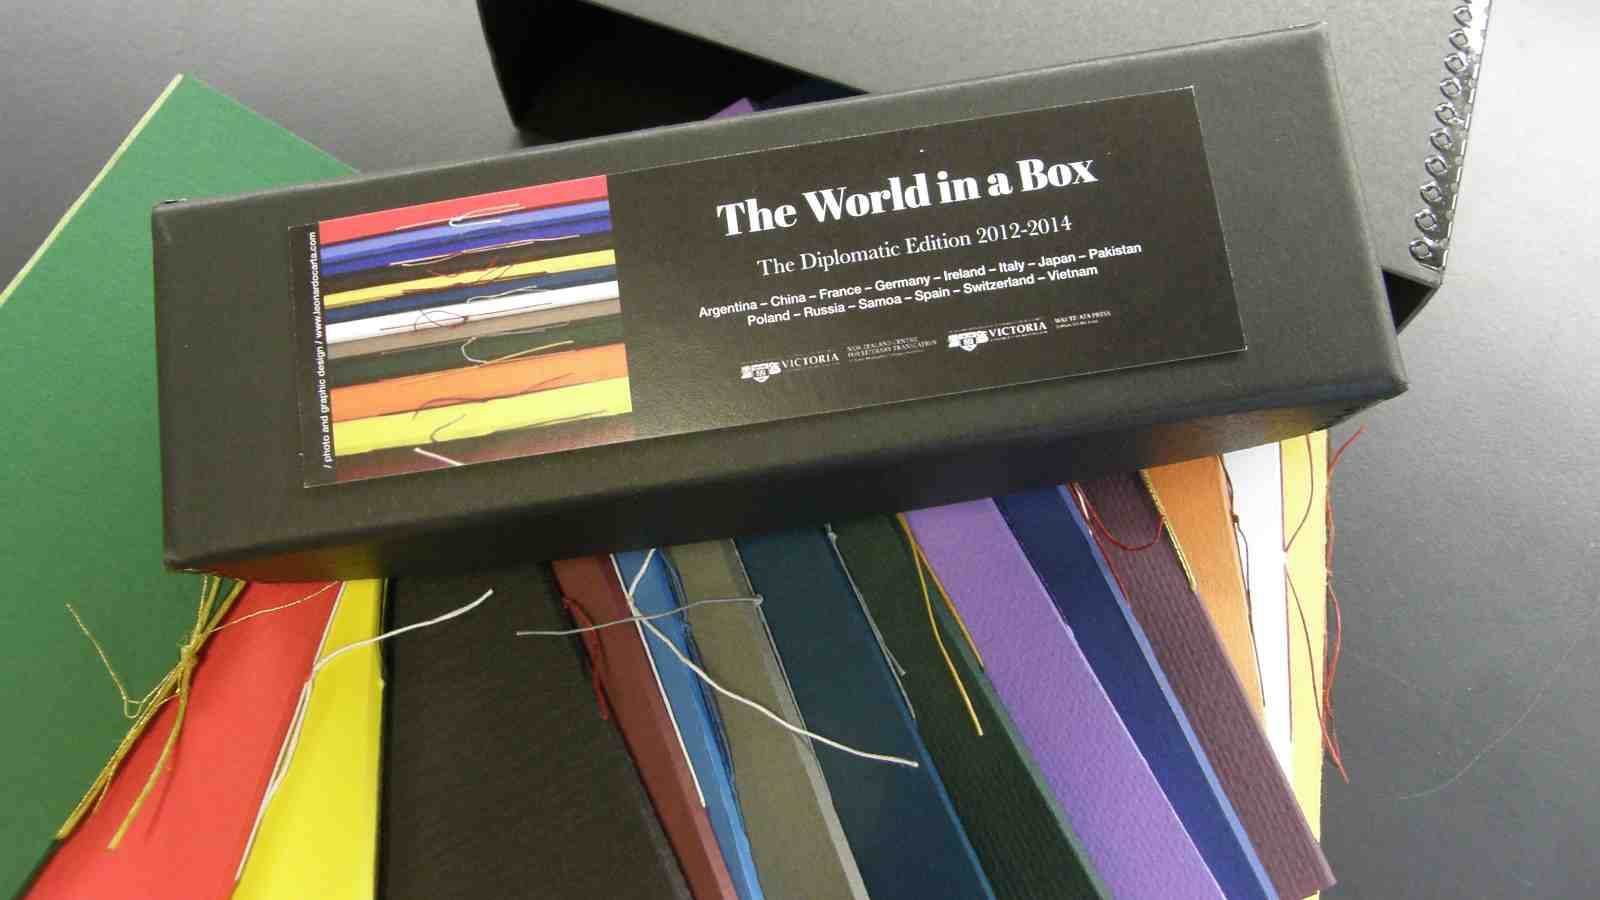 The World in a Box collection with it's colourful contents fanned out beneath the bow.